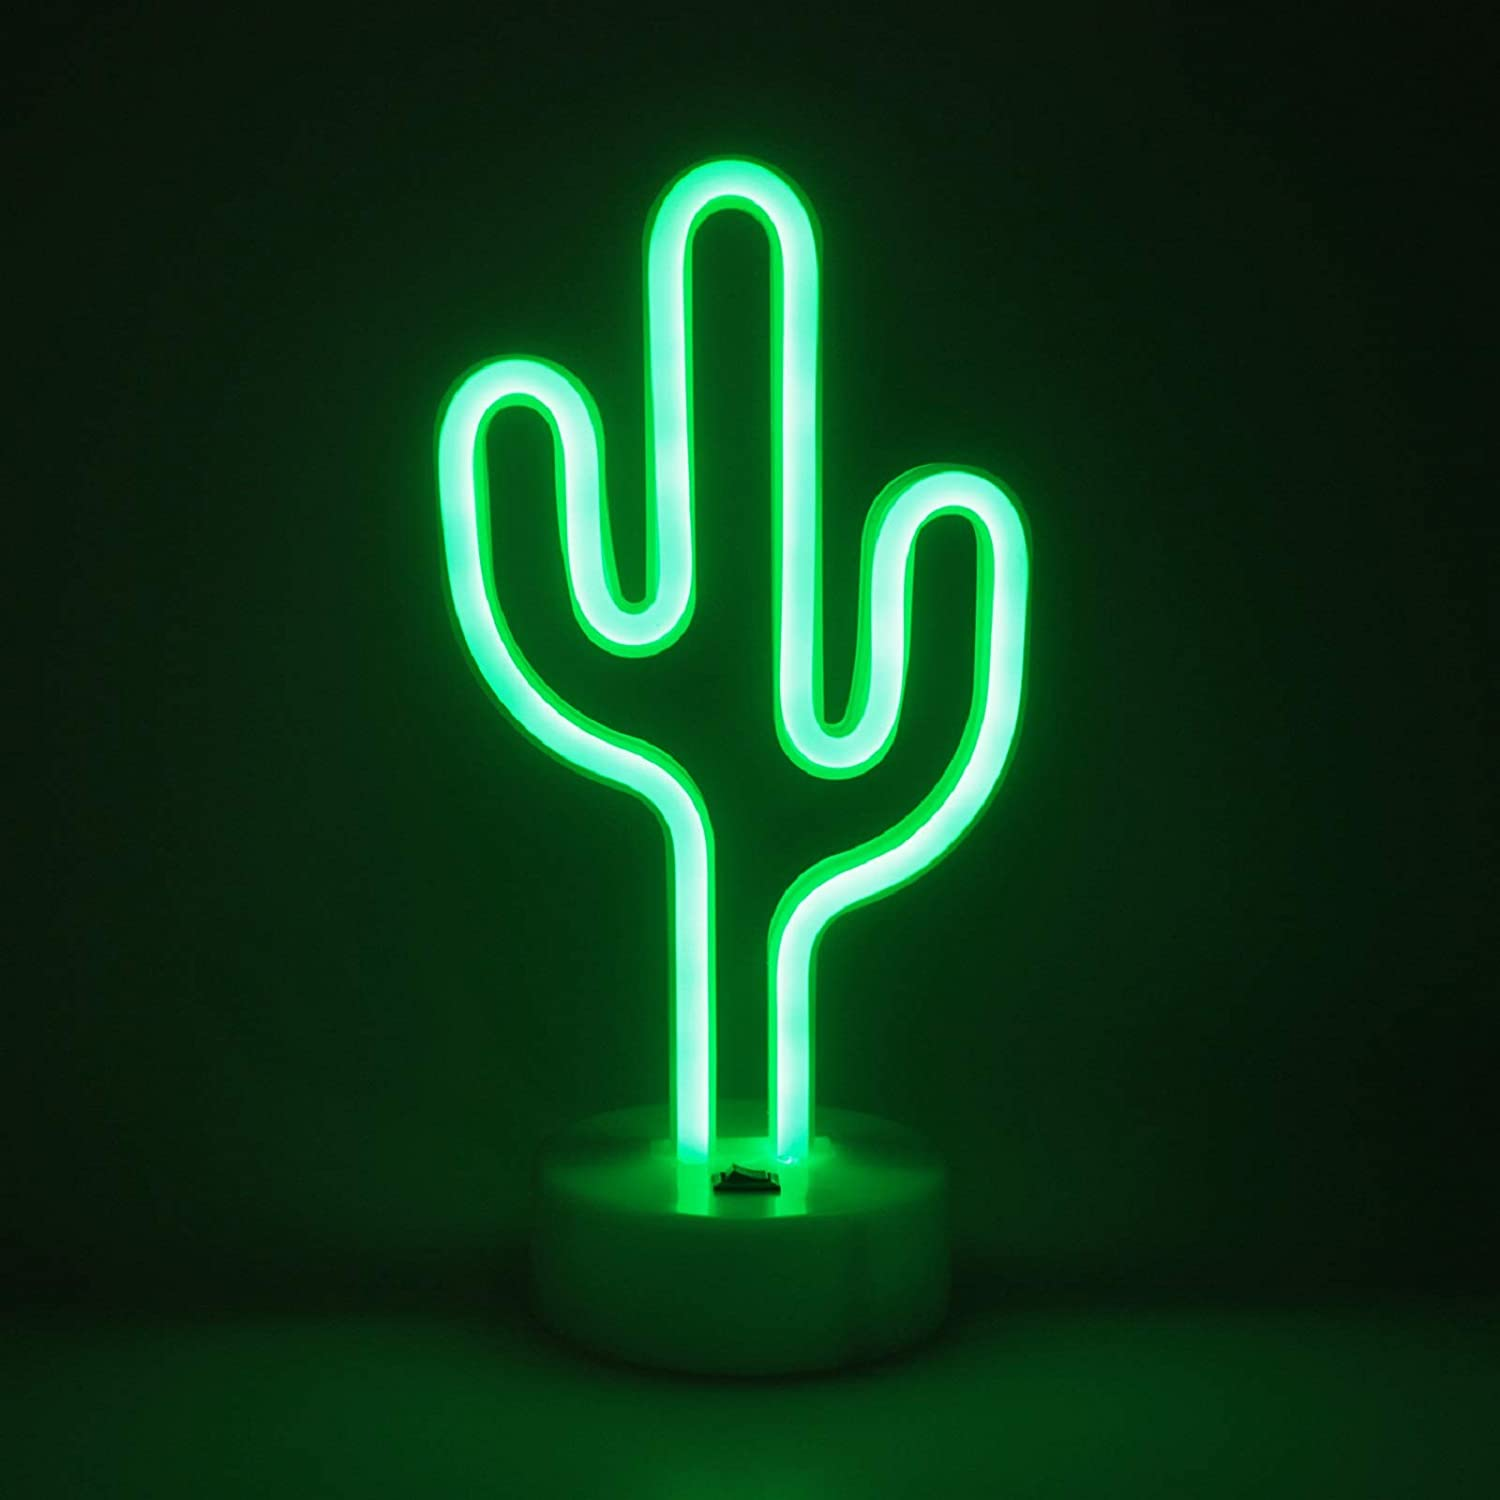 BHCLIGHT Cactus Neon Signs Room Decor LED Neon Light with Holder Base for Table Light Home Party Birthday Bedroom Bedside Table Decoration Gifts (Green)